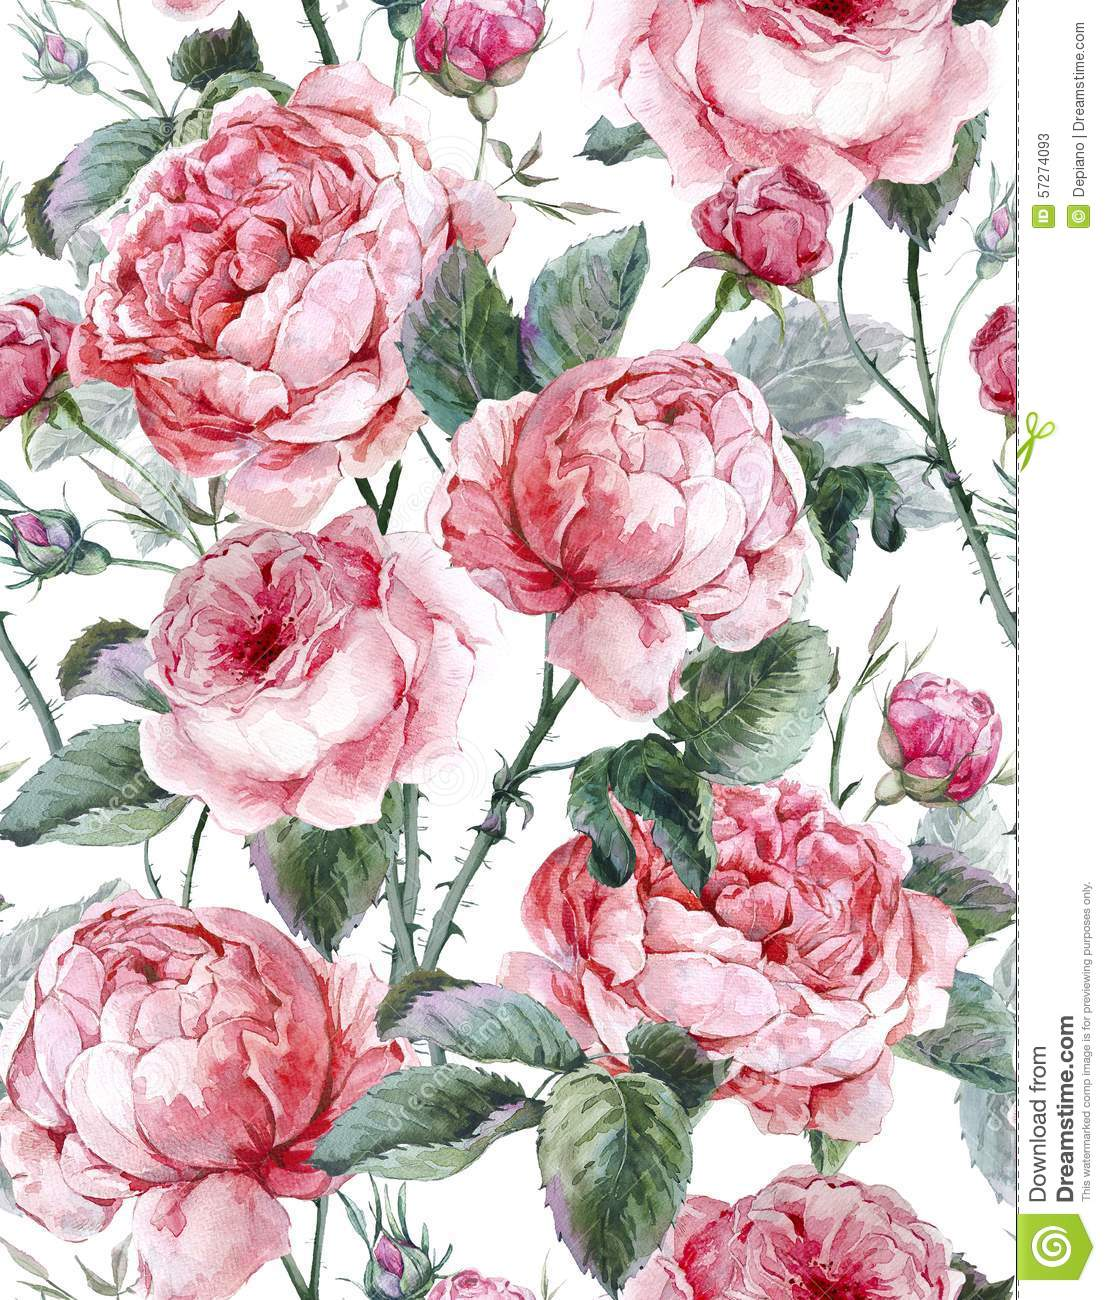 Classical Vintage Floral Seamless Pattern Stock